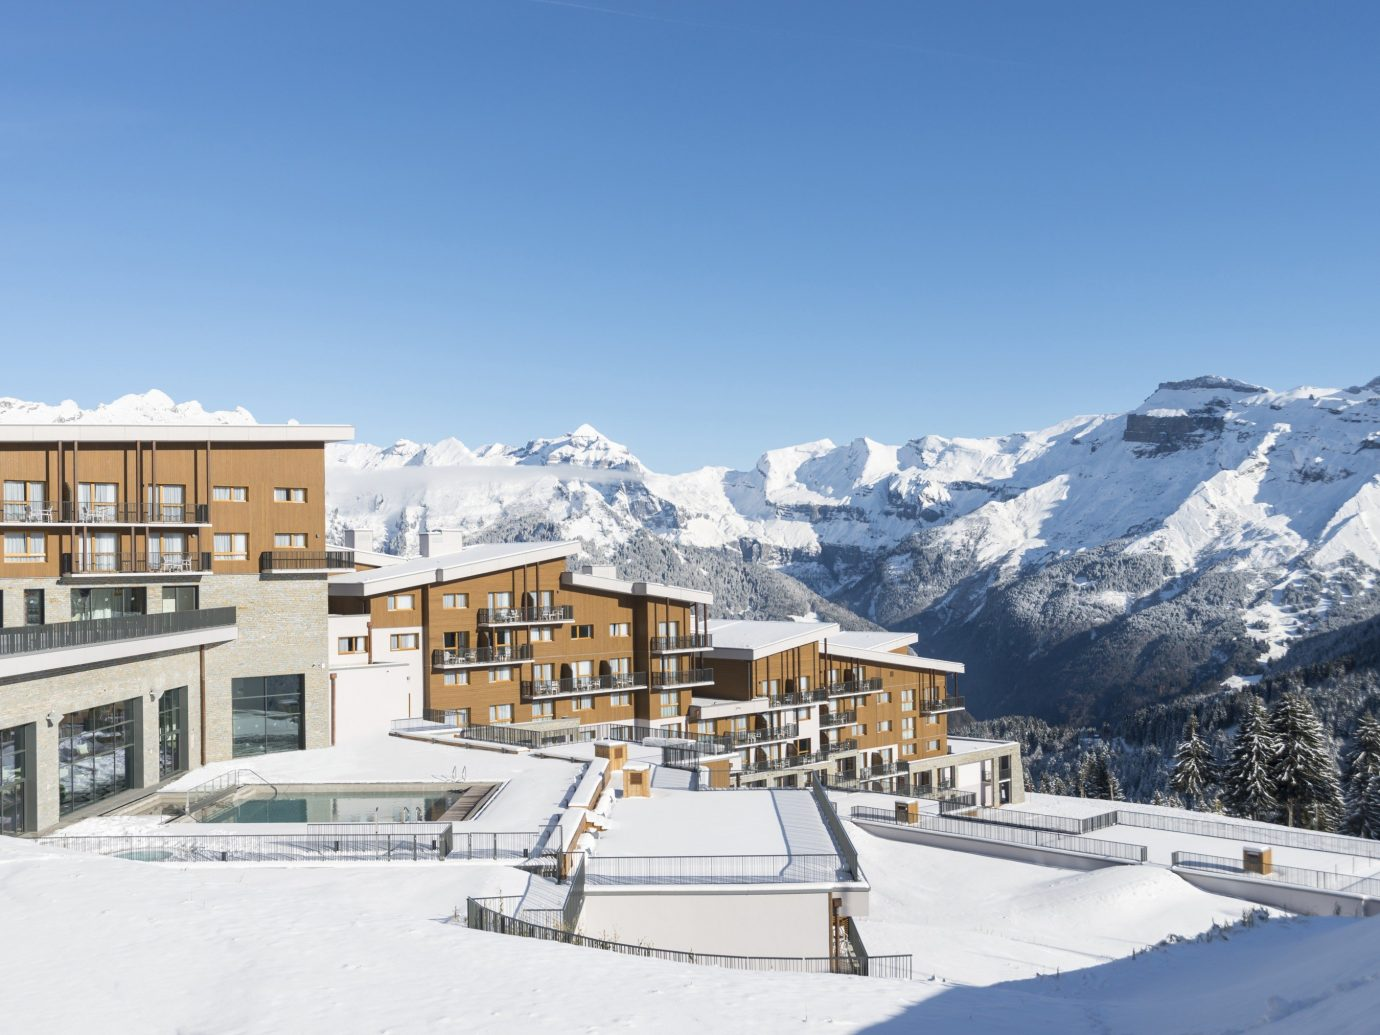 All-Inclusive Resorts Family Travel Hotels Winter mountain range snow property home sky alps mountain piste real estate elevation house apartment ski resort glacial landform roof